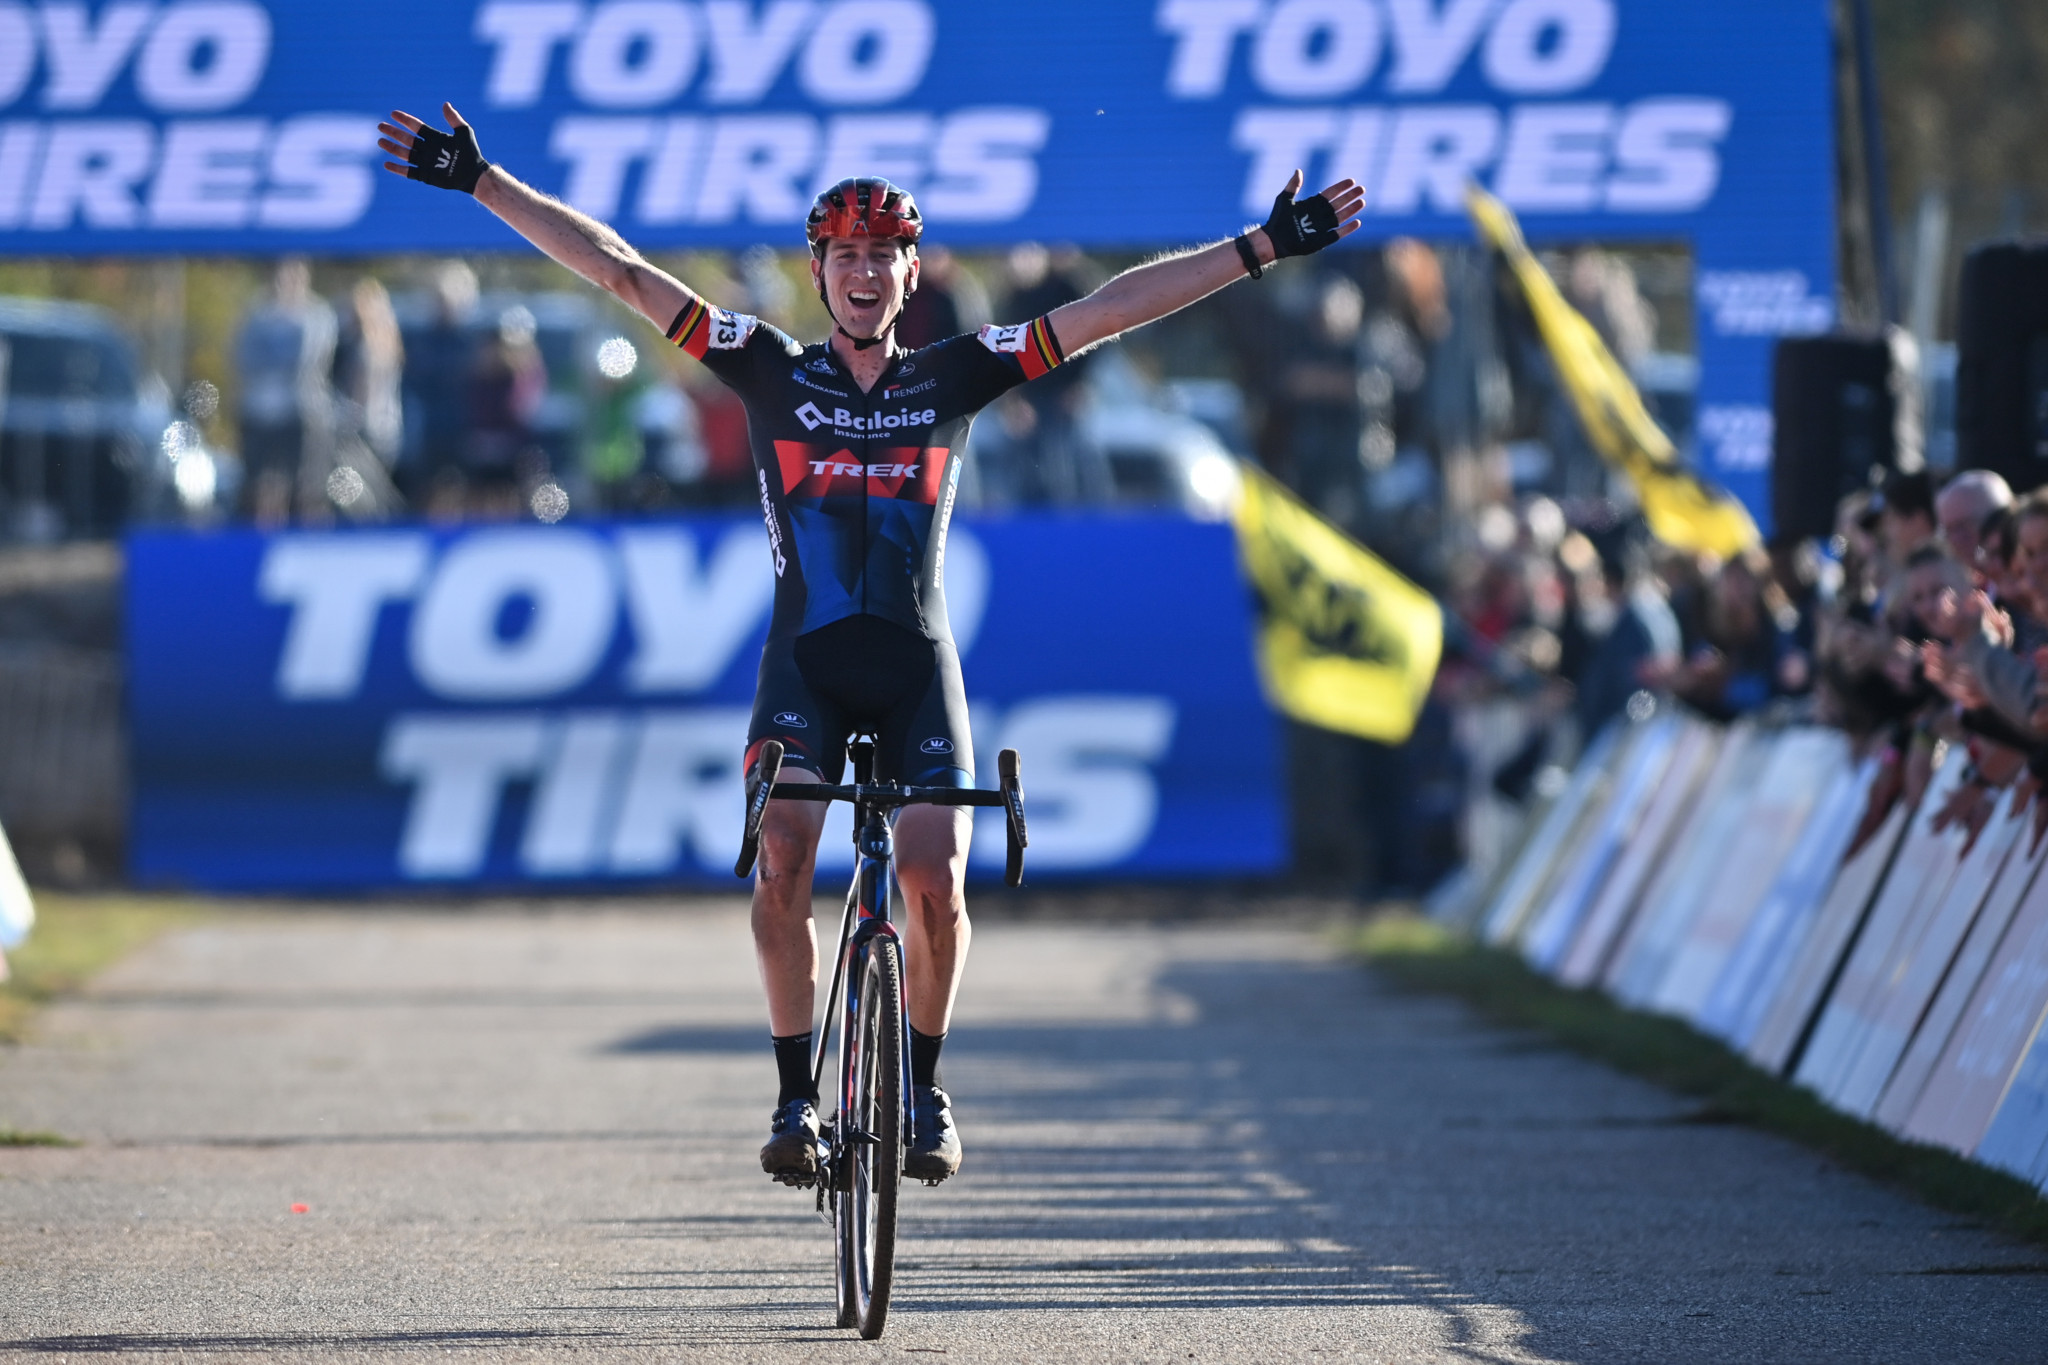 Aerts and Betsema continue Belgian and Dutch dominance in Cyclo-cross World Cup